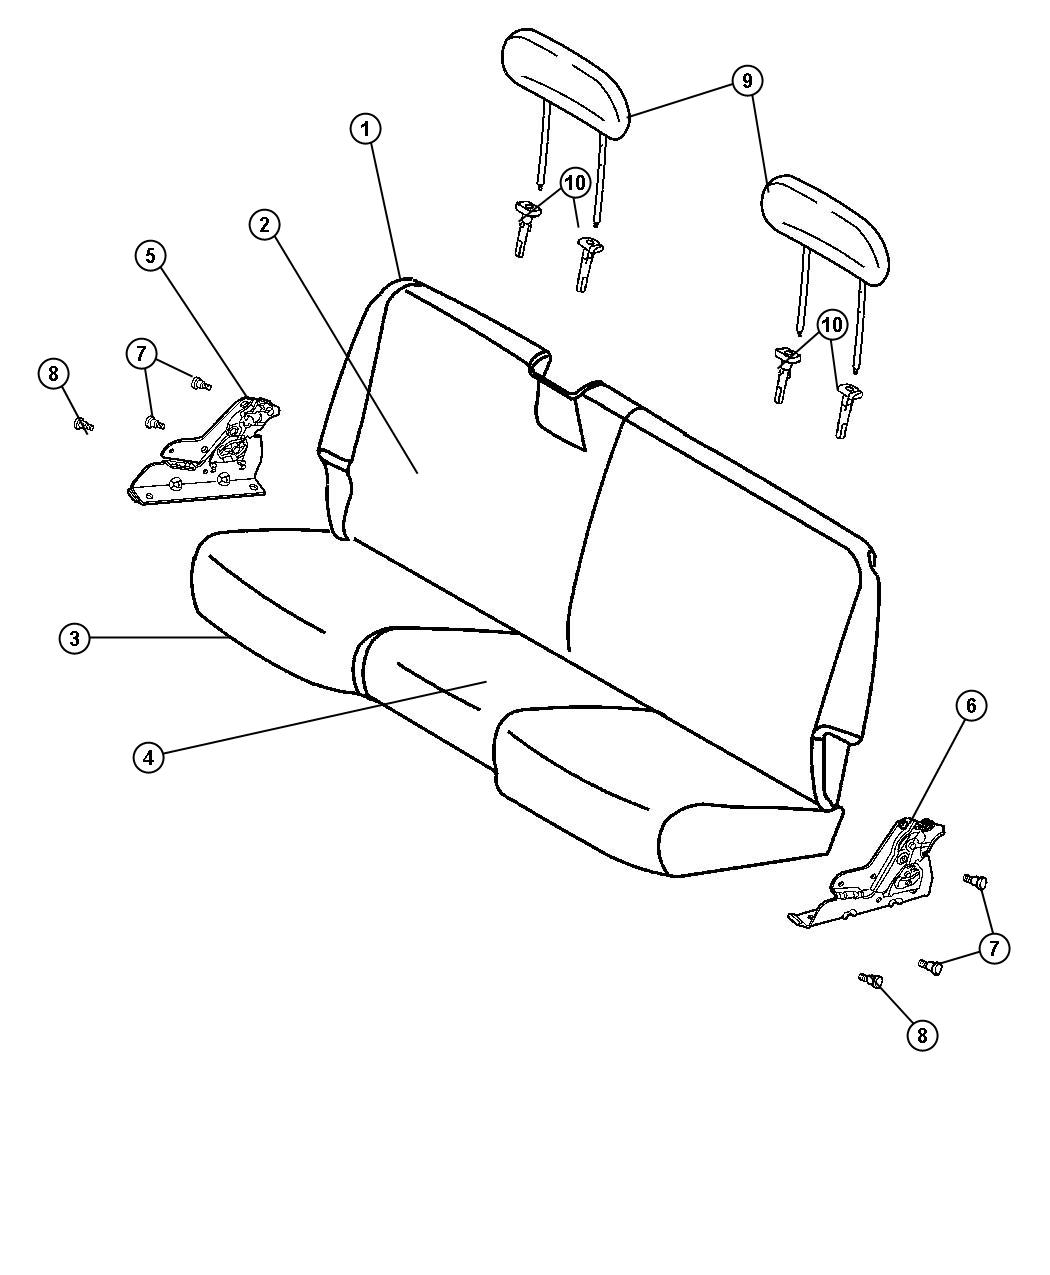 Diagram Rear Seat - Bench - Trim Code [TX]. for your Dodge